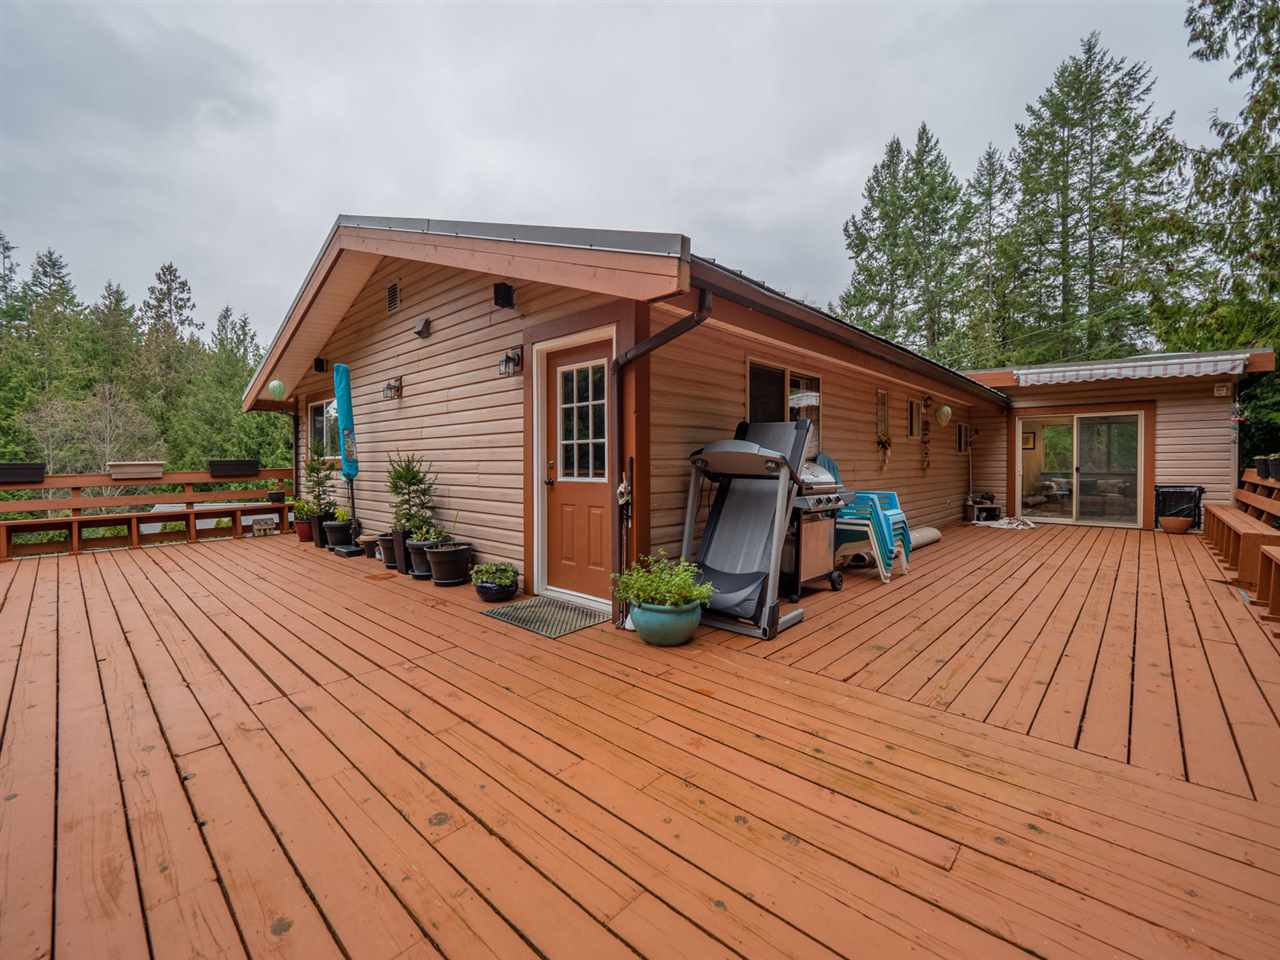 Photo 18: Photos: 12674 MERRILL Crescent in Pender Harbour: Pender Harbour Egmont House for sale (Sunshine Coast)  : MLS®# R2337589